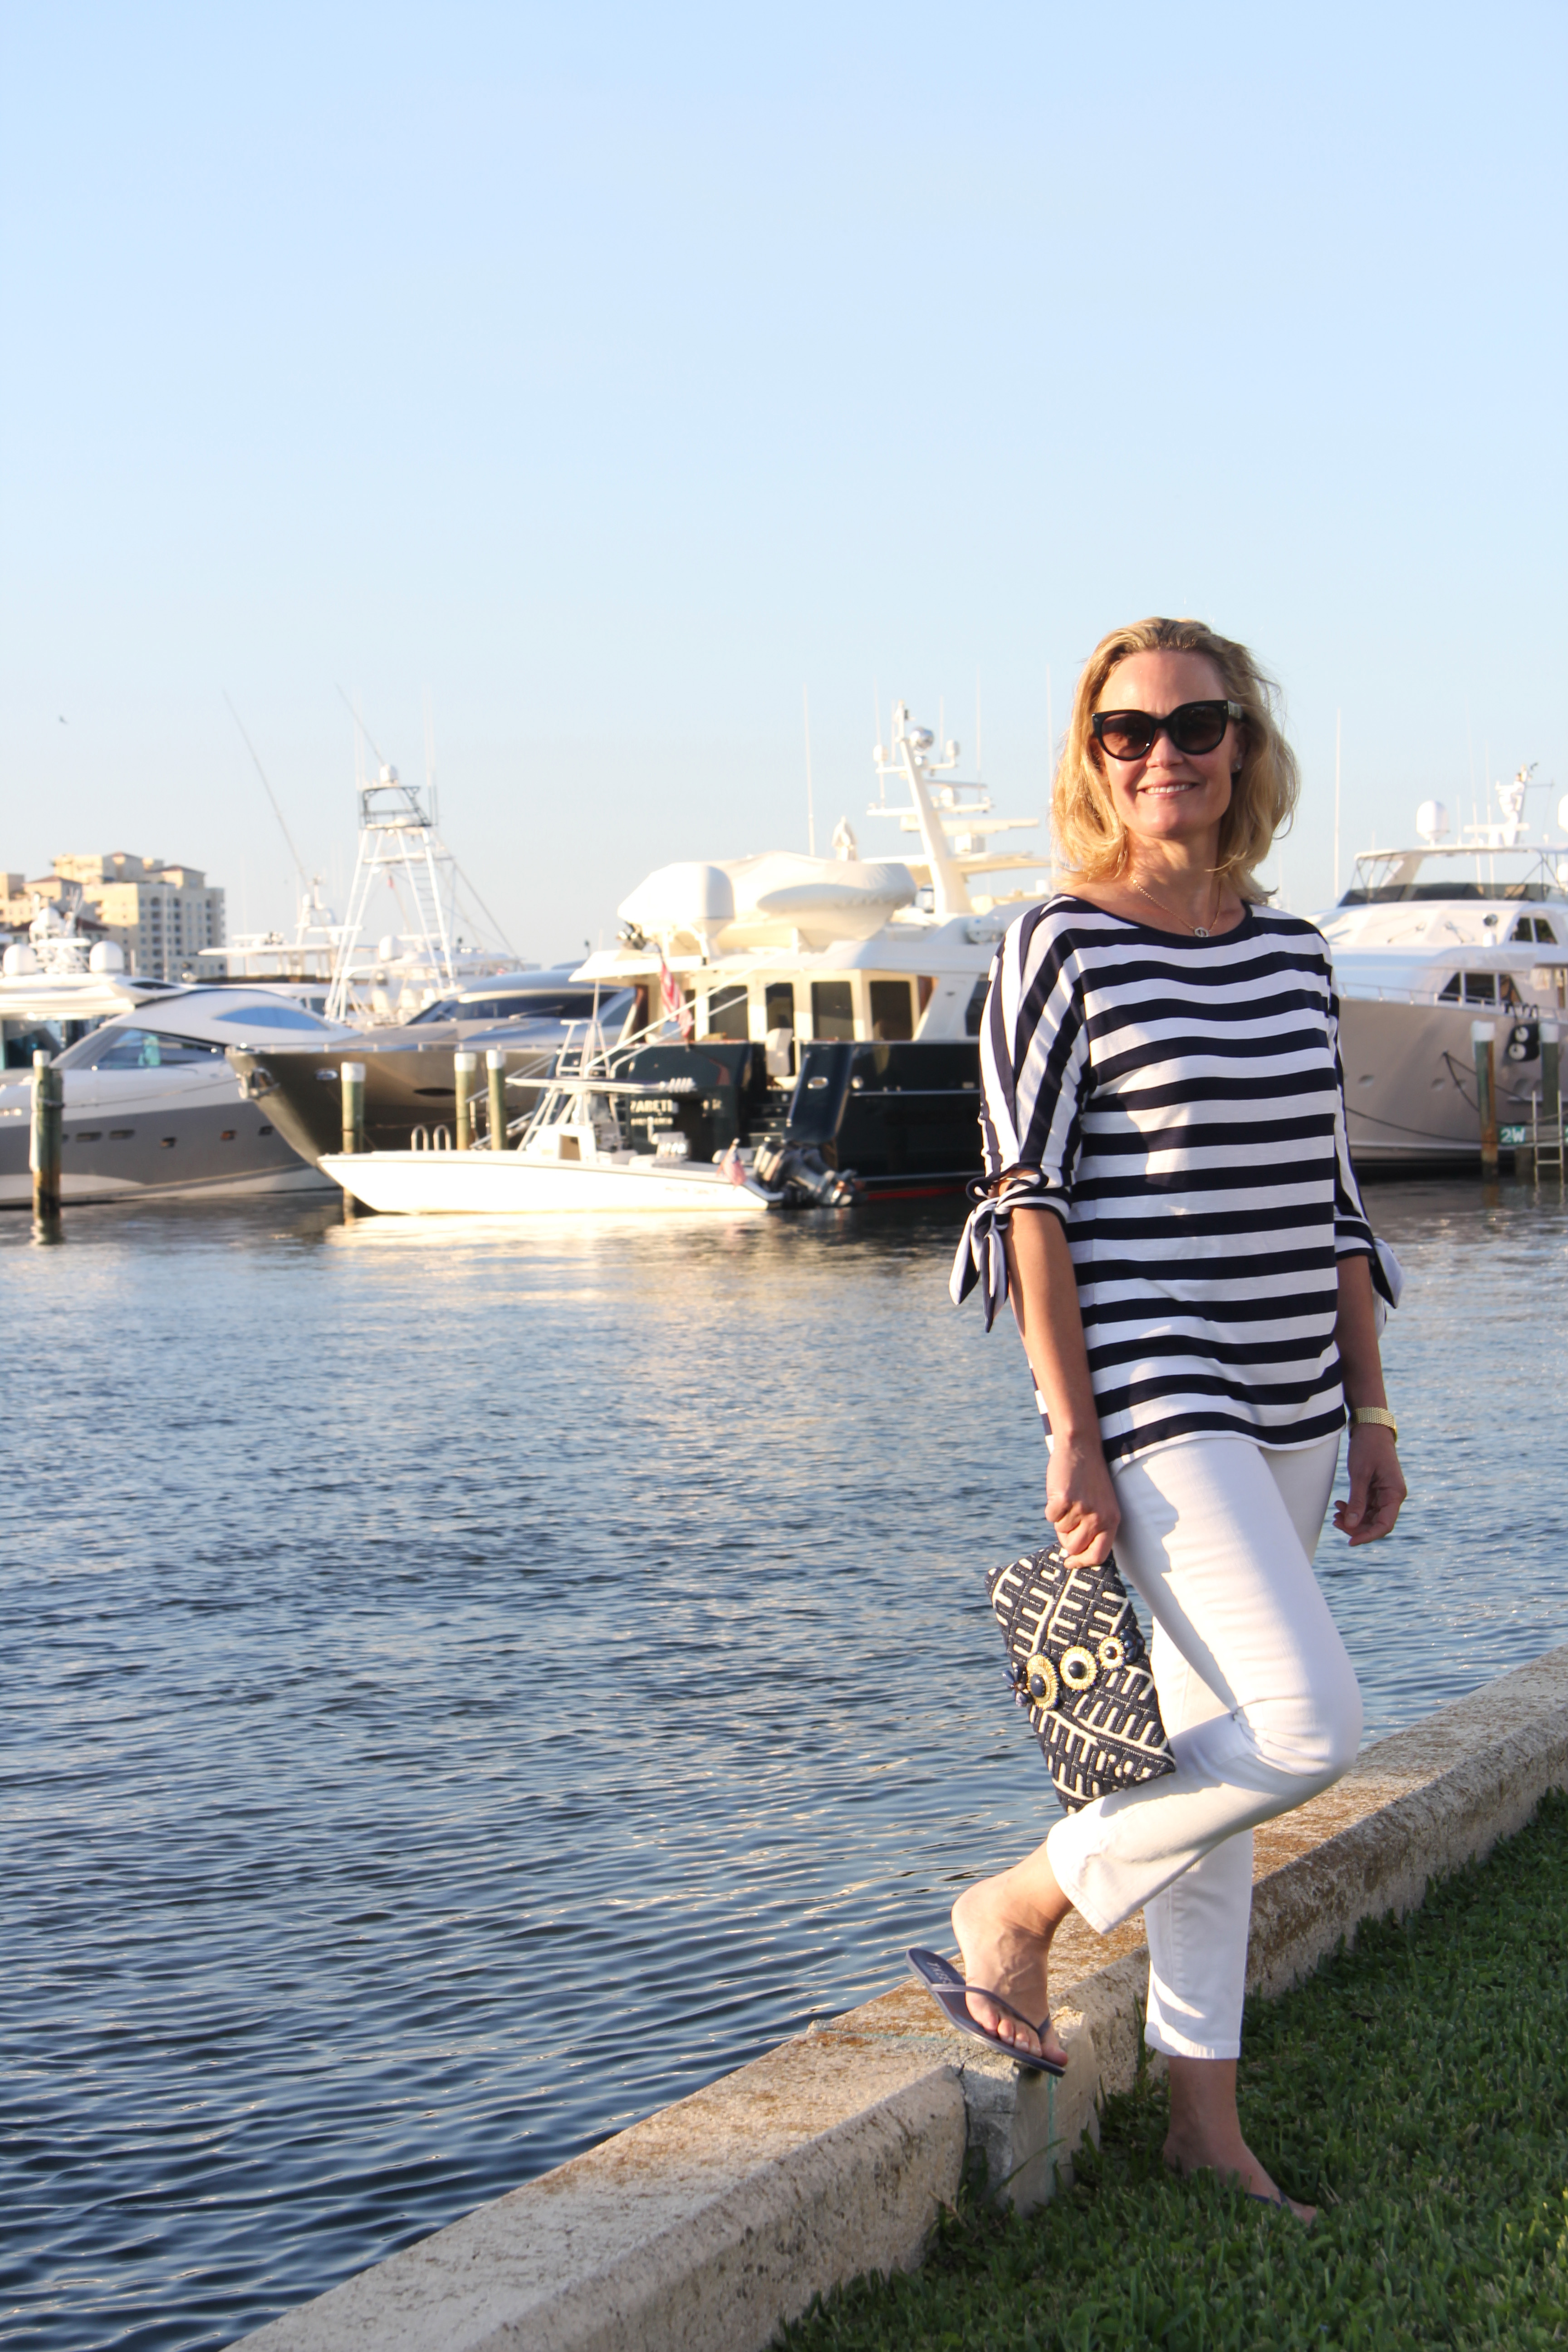 Ridgely Brode is sporting a comfortable and classic navy and white striped tie top while on vacation on her blog, Ridgely's Radar.